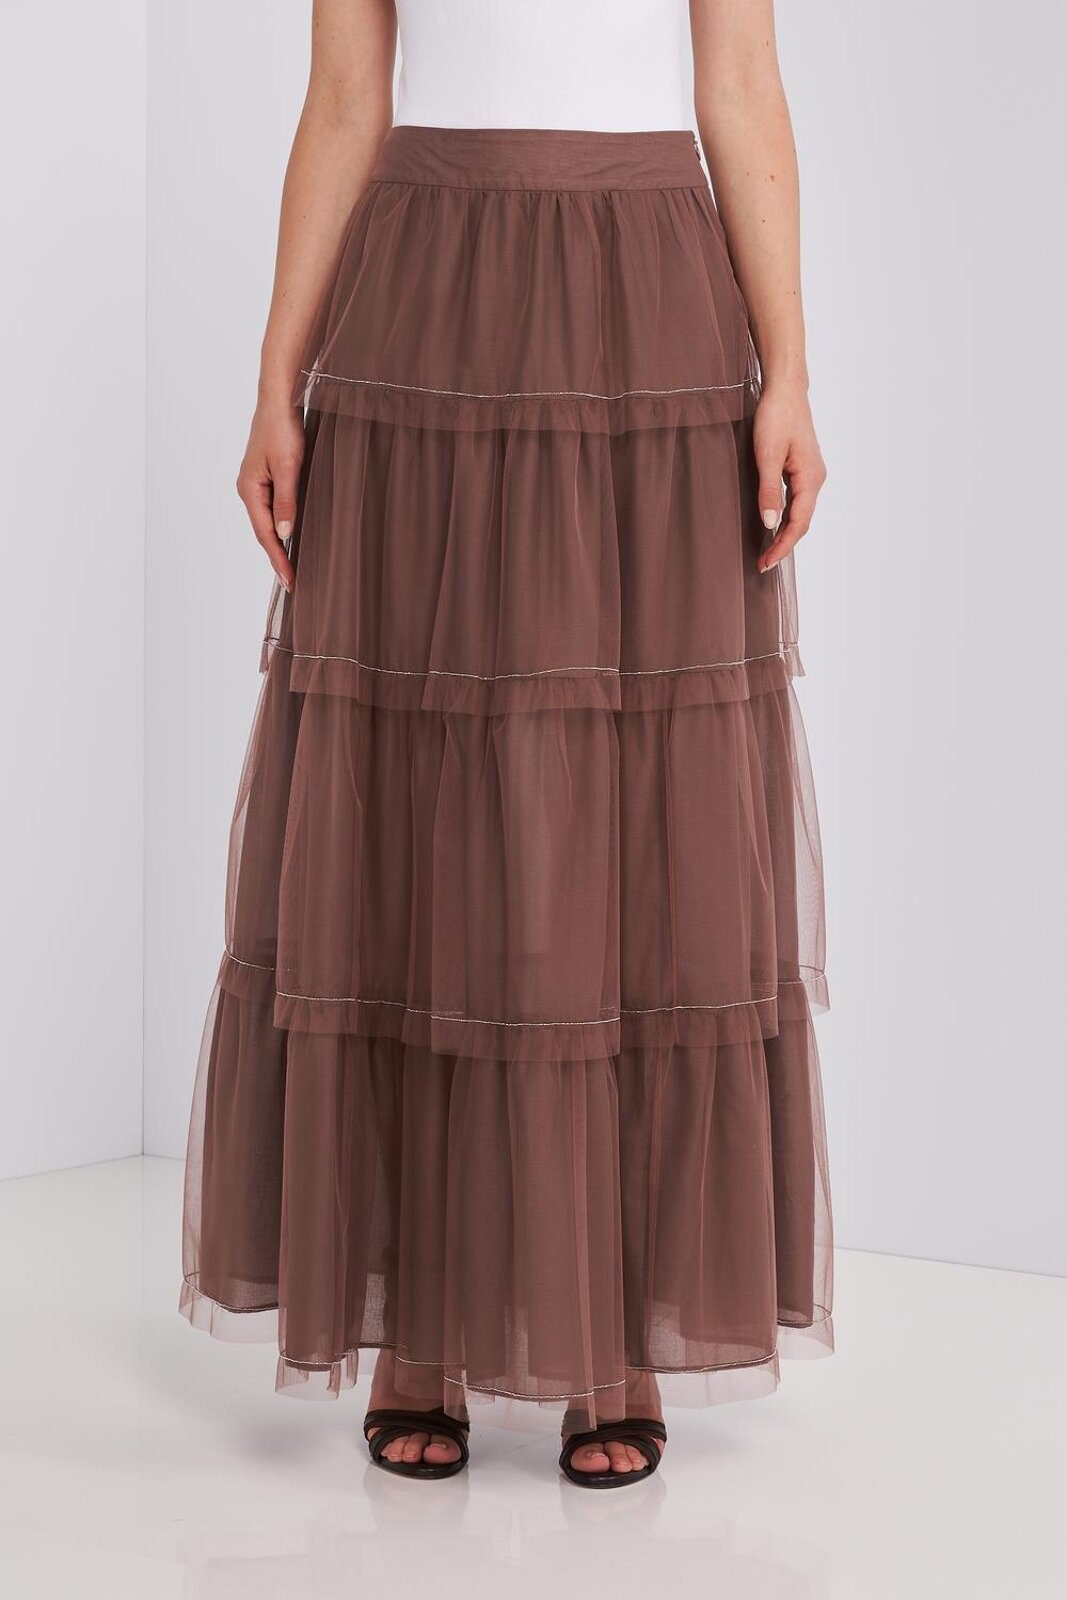 Long skirt in layers of light tulle with flounces with small light point details in metal on the edges. Two side pockets, zip closure on the back. Wide fit. - Peserico